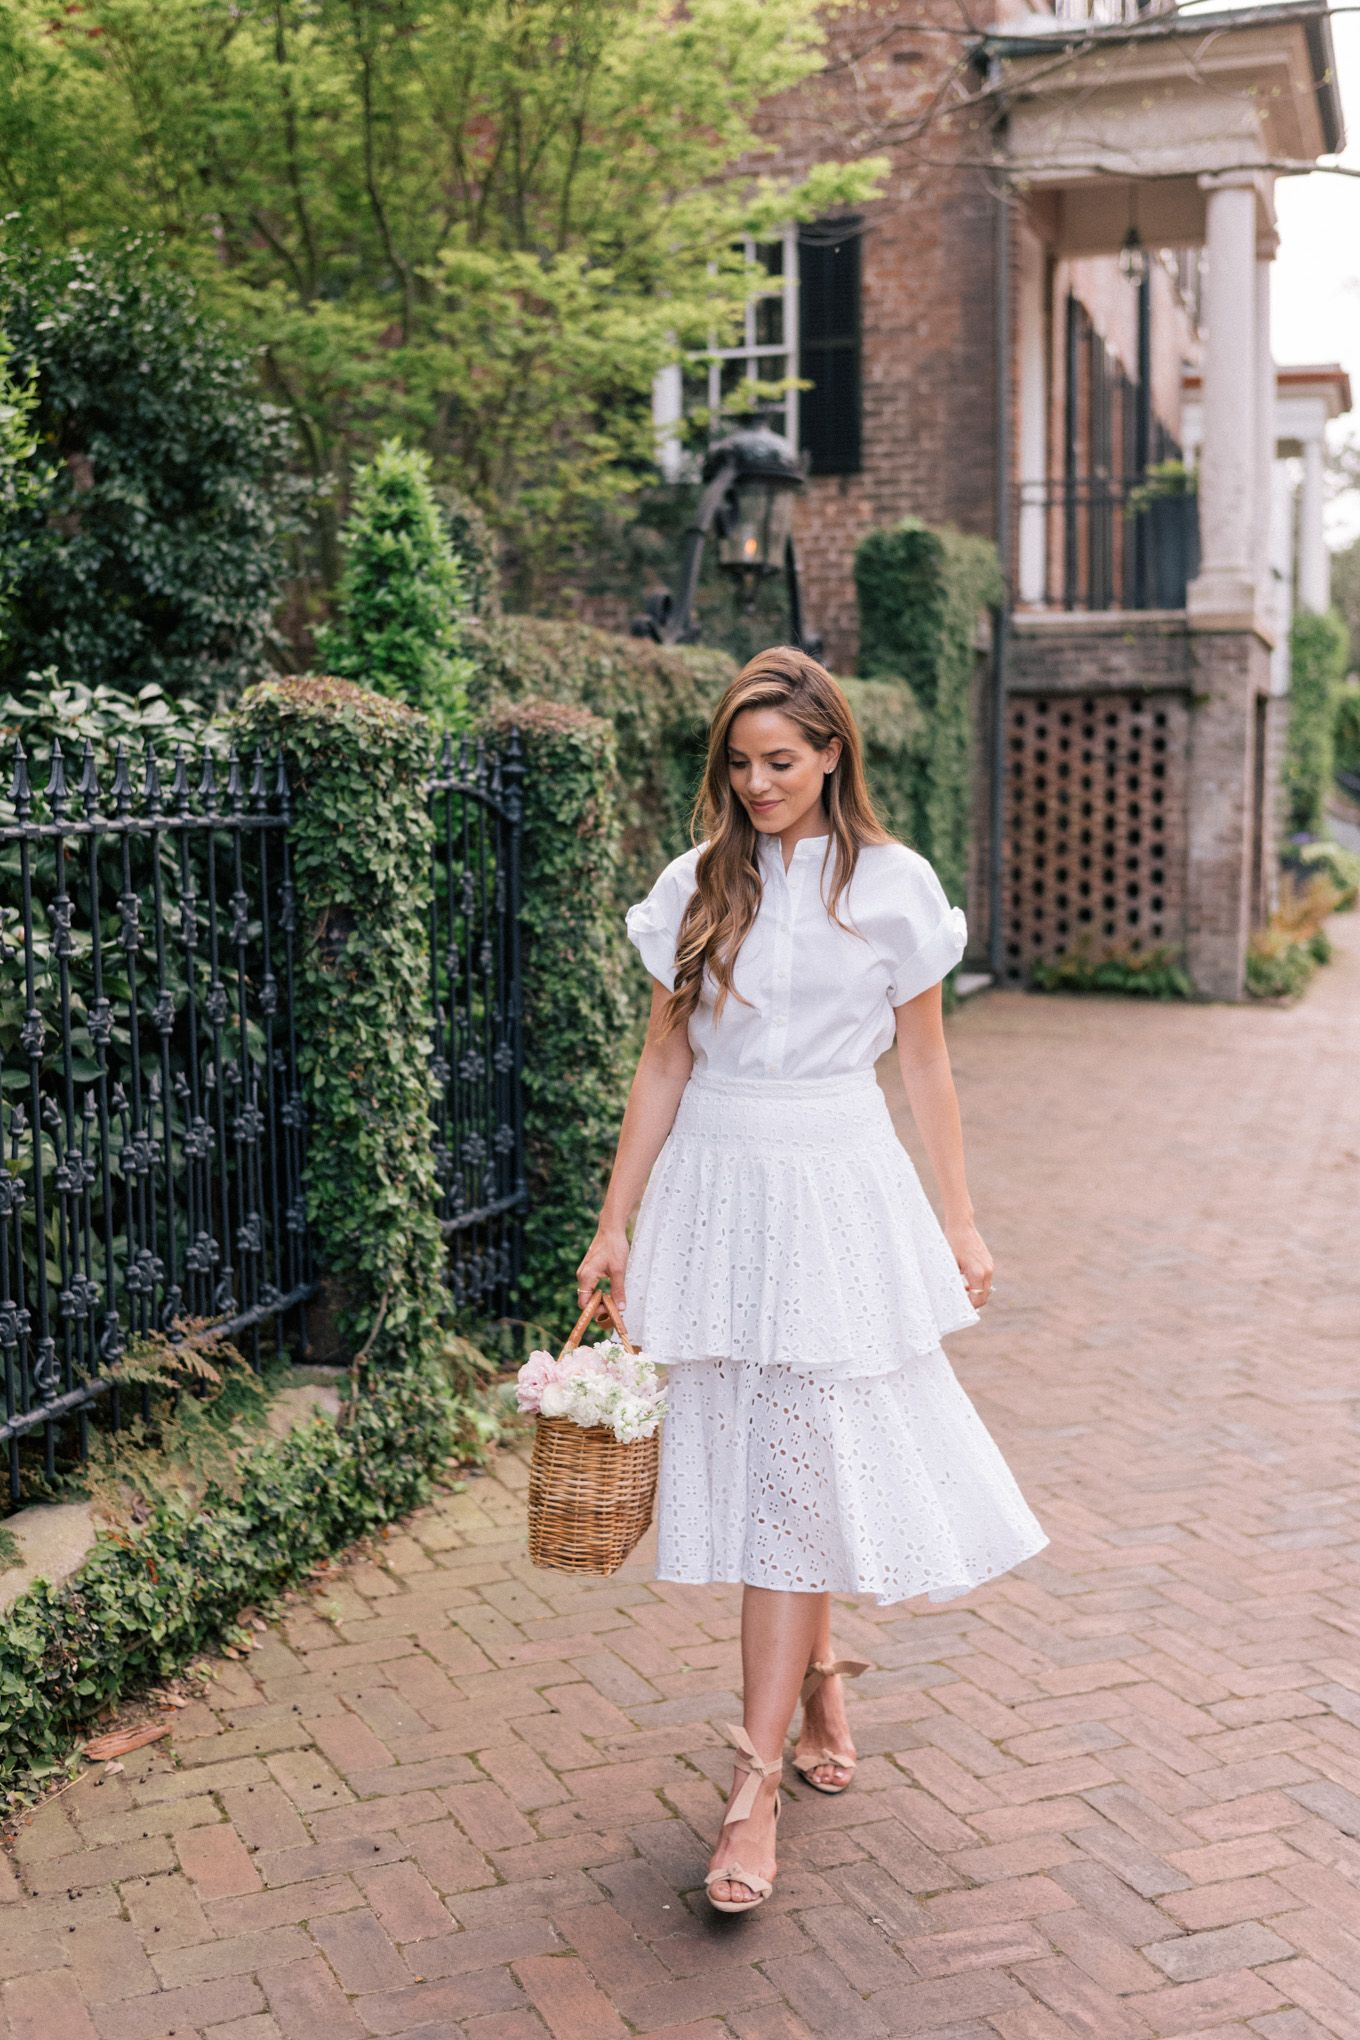 The Best of Spring Skirts - Gal Meets Glam #springskirtsoutfits